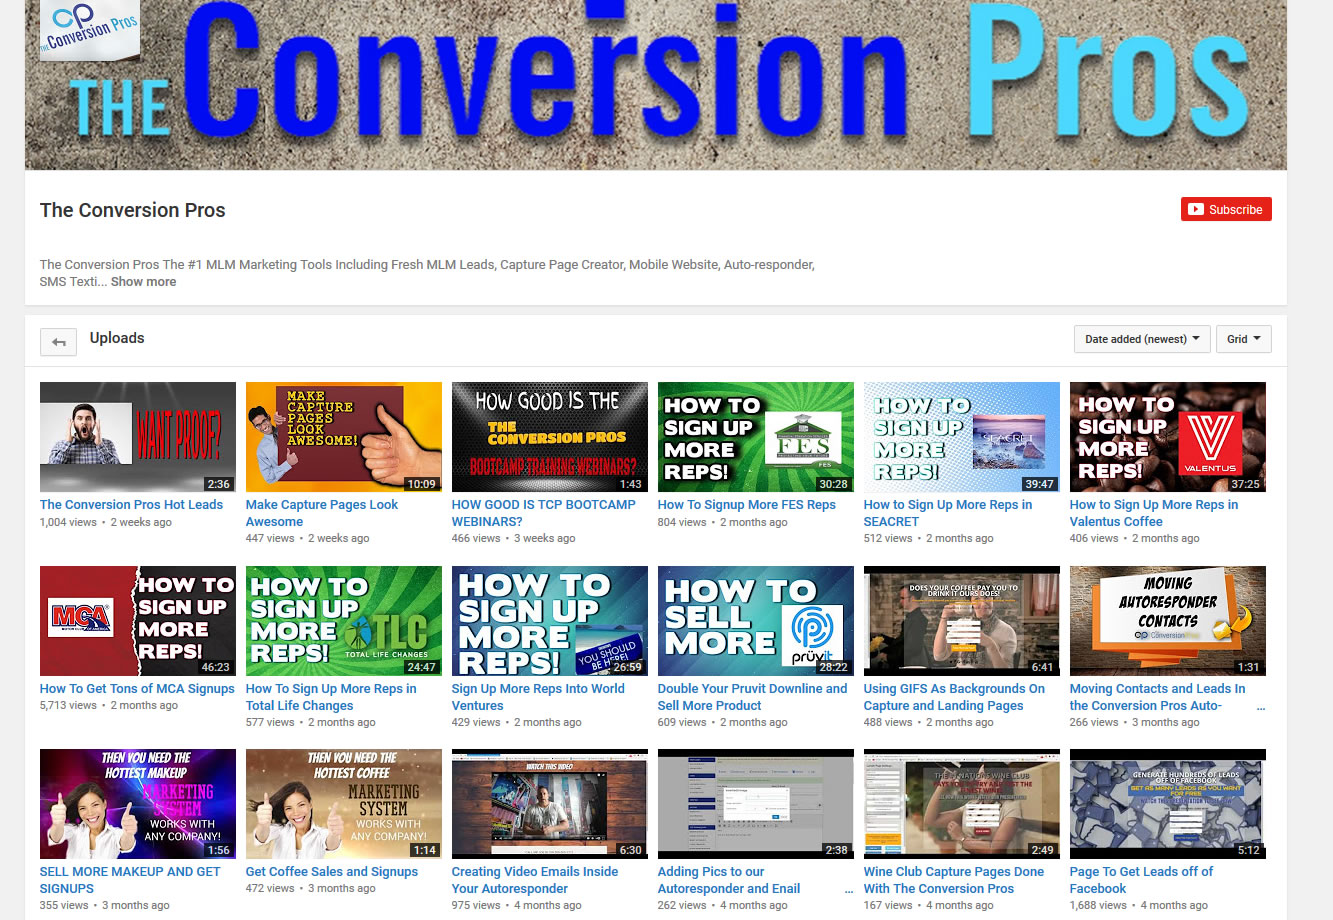 The Conversion Pros YouTube